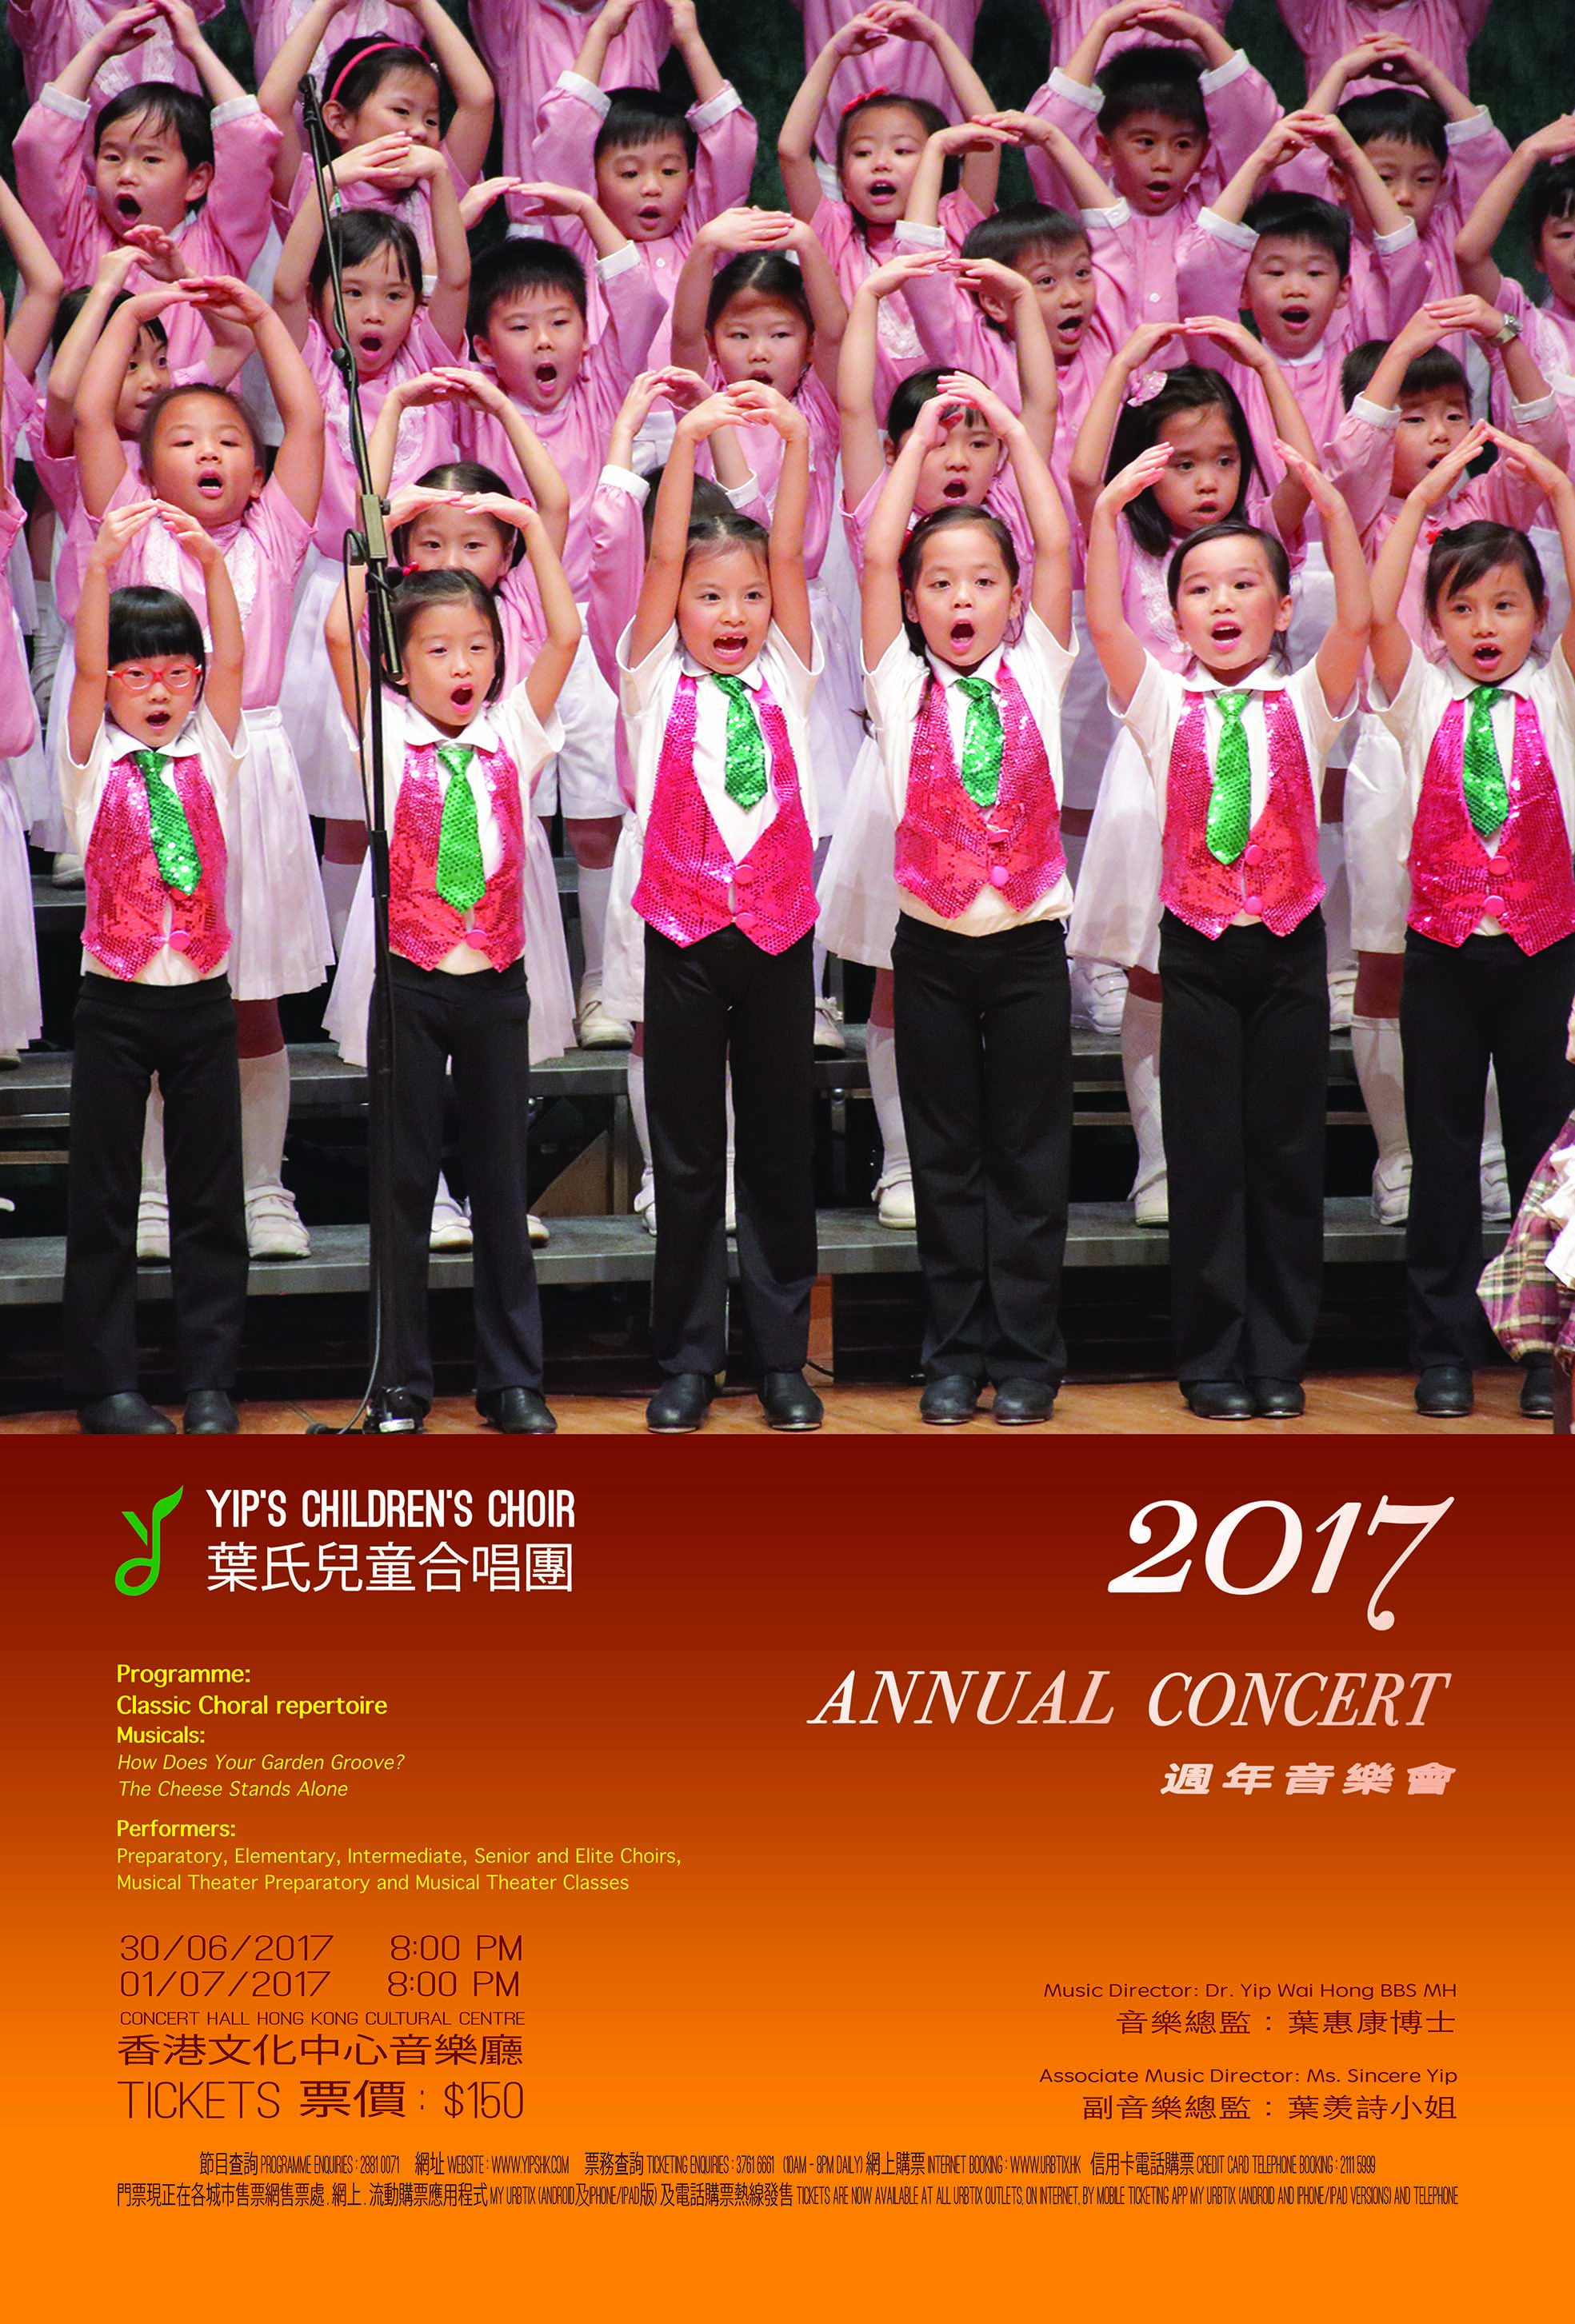 Yip's Children's Choir Annual Concert 2017